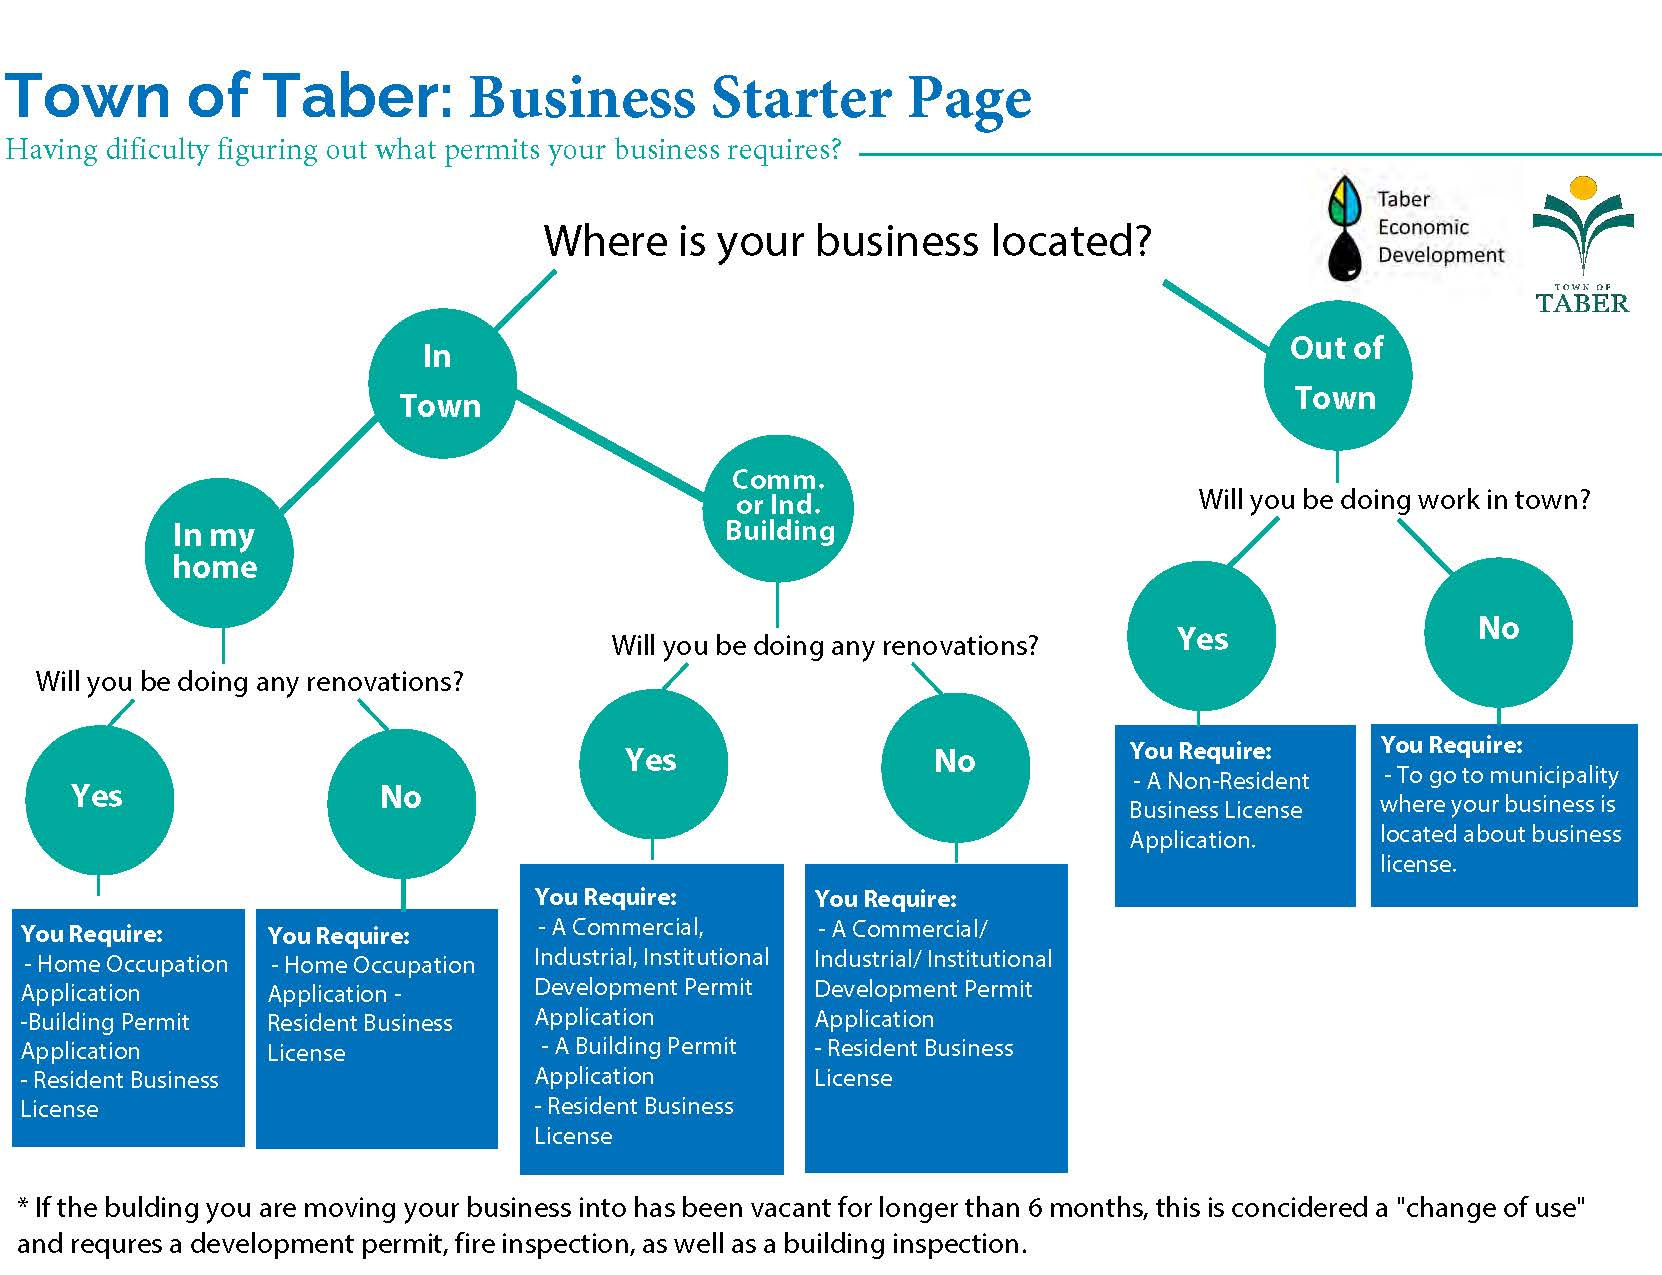 Town of Taber: Starting a Business - Finding Out what Permits Your Business Requires